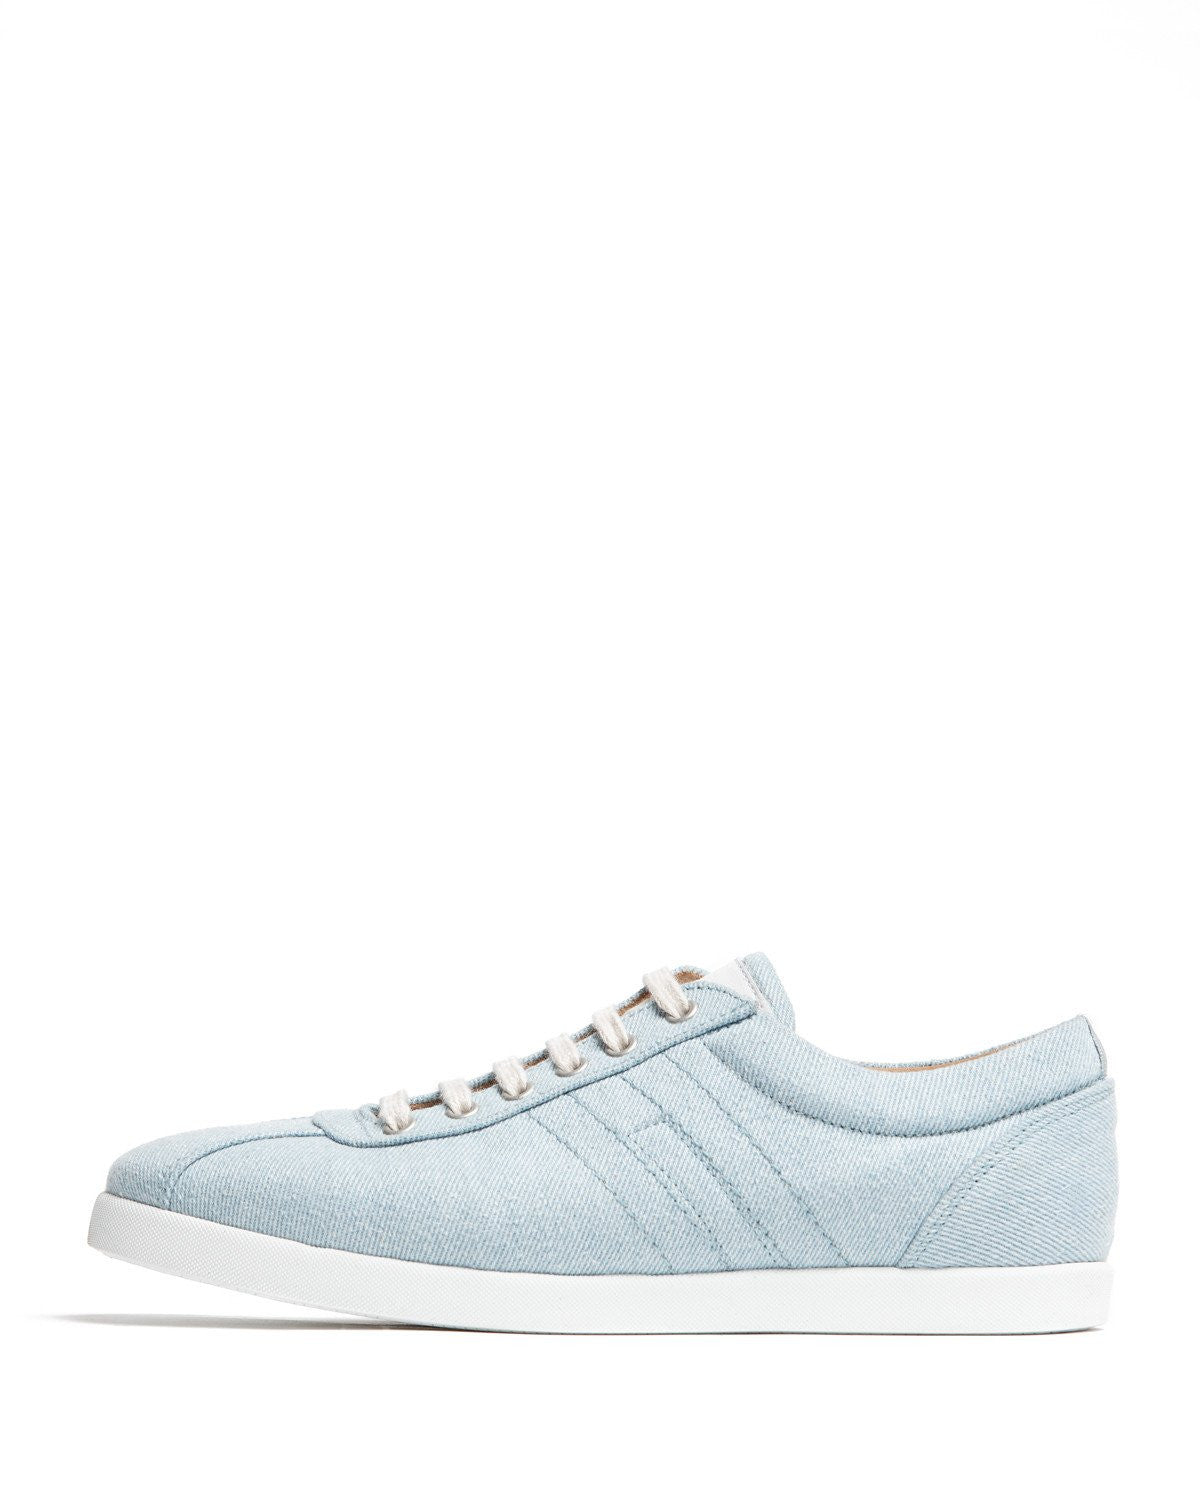 ATM Bleecker Lace-Up Sneaker